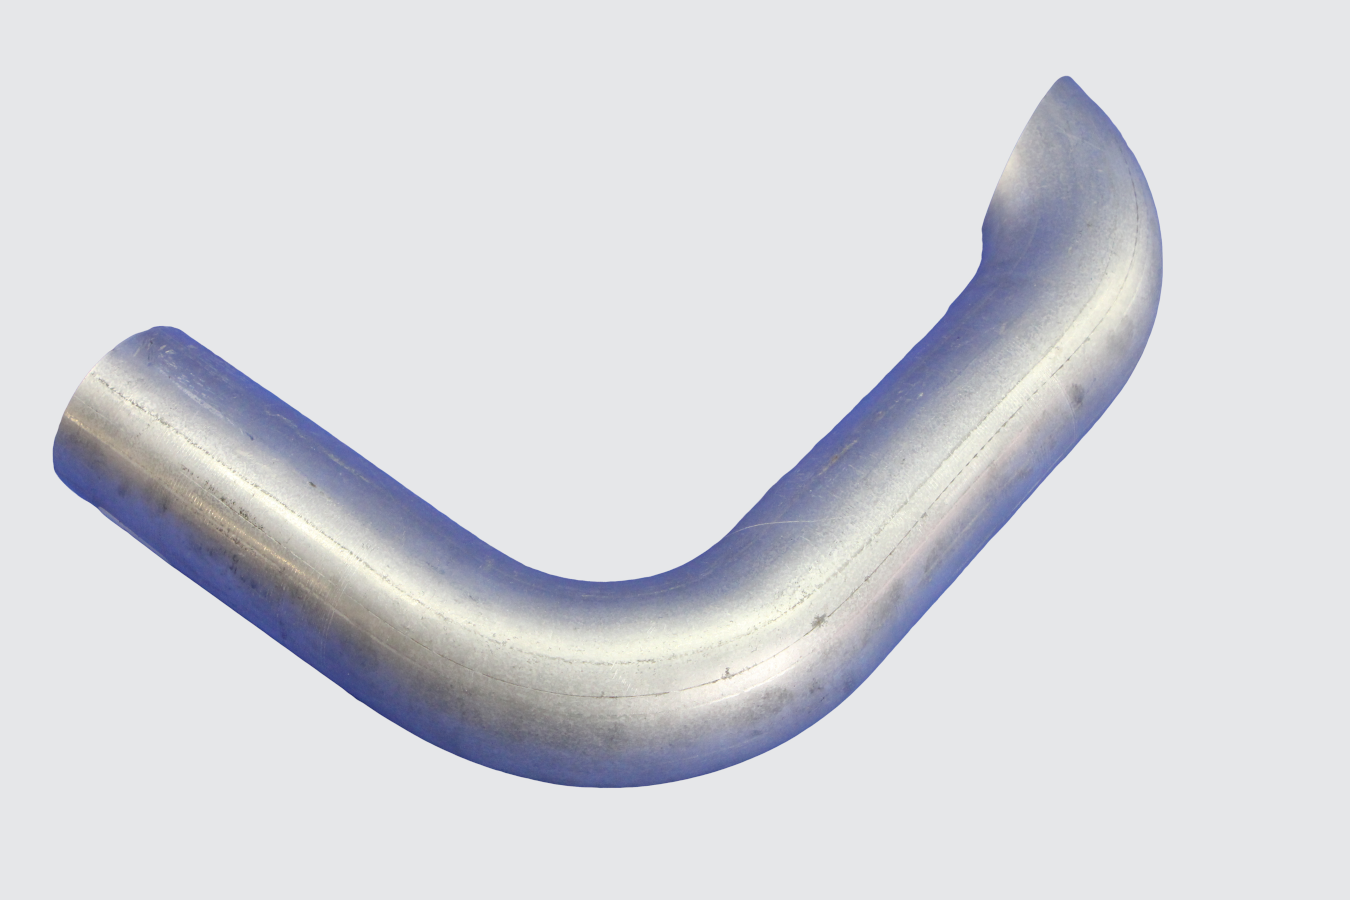 36775690 - PIPE, EXH TAIL 250 OD